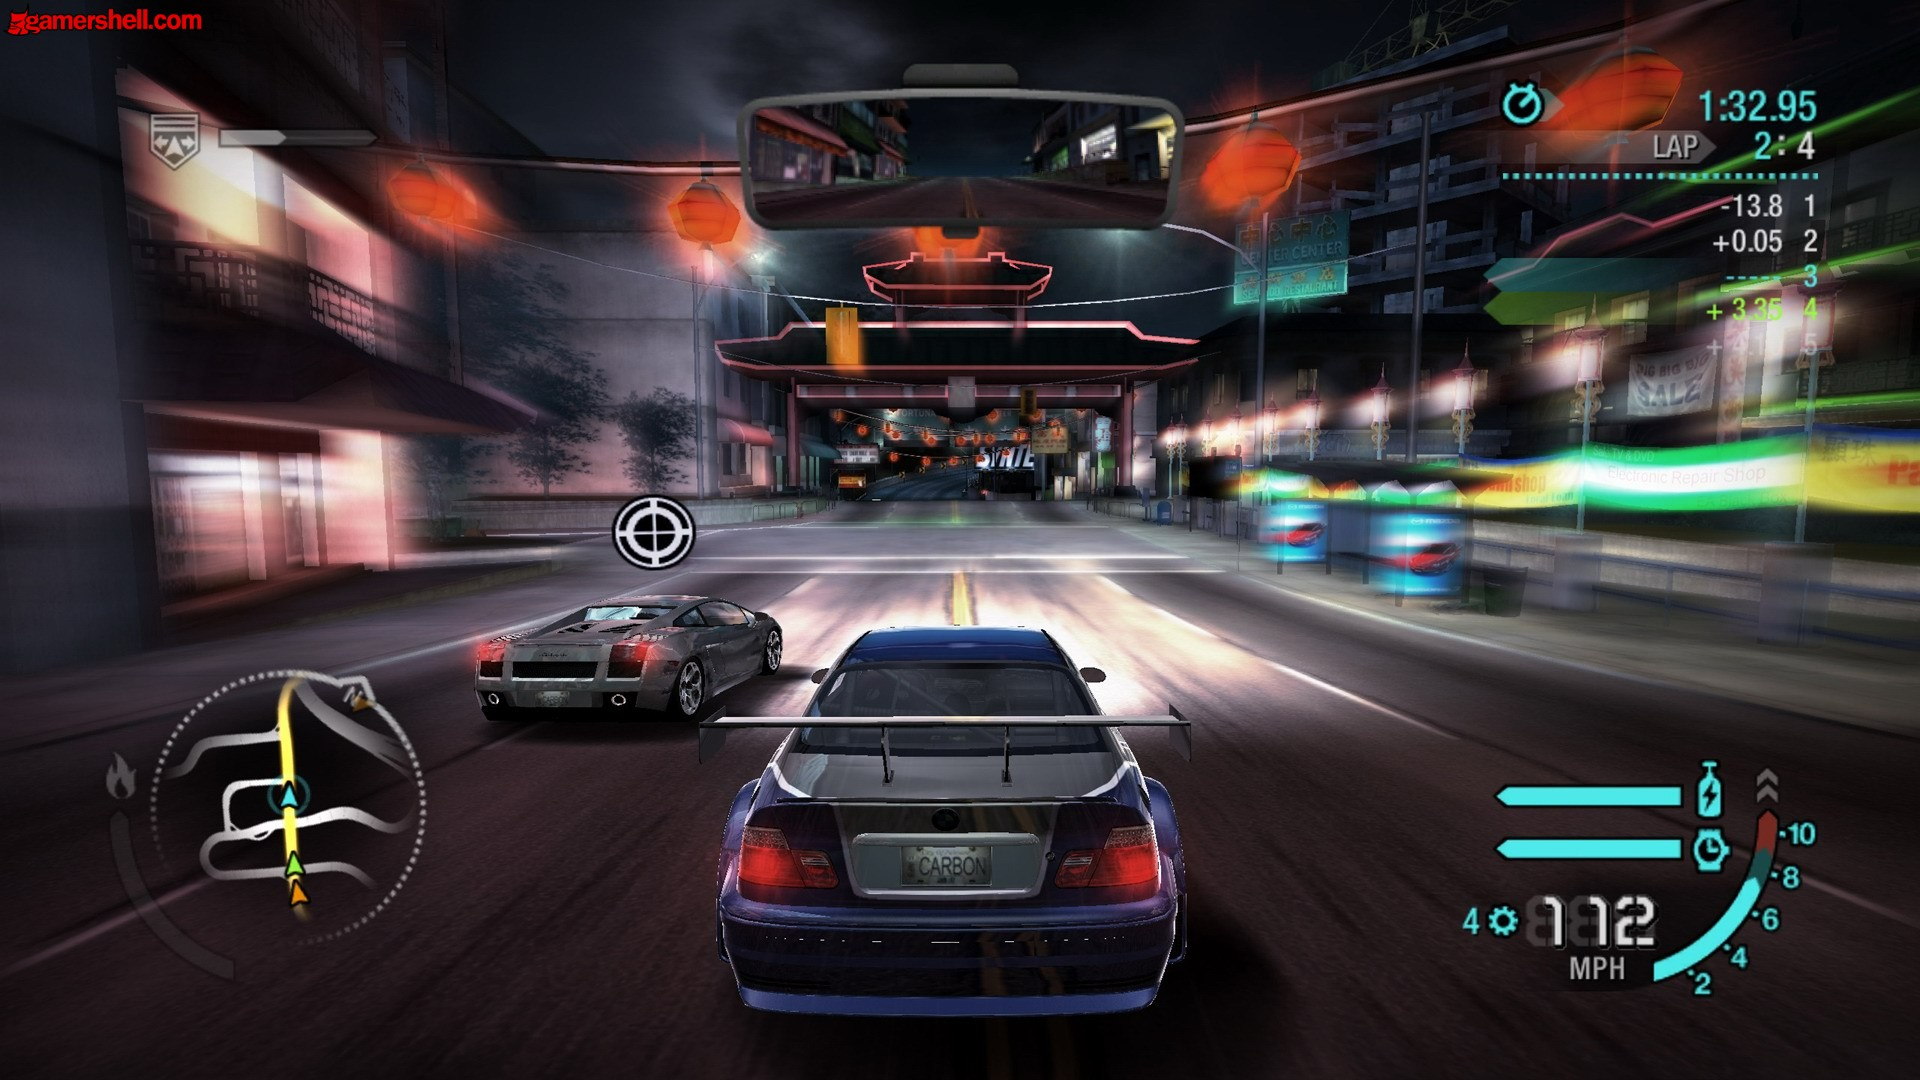 Need for speed world site